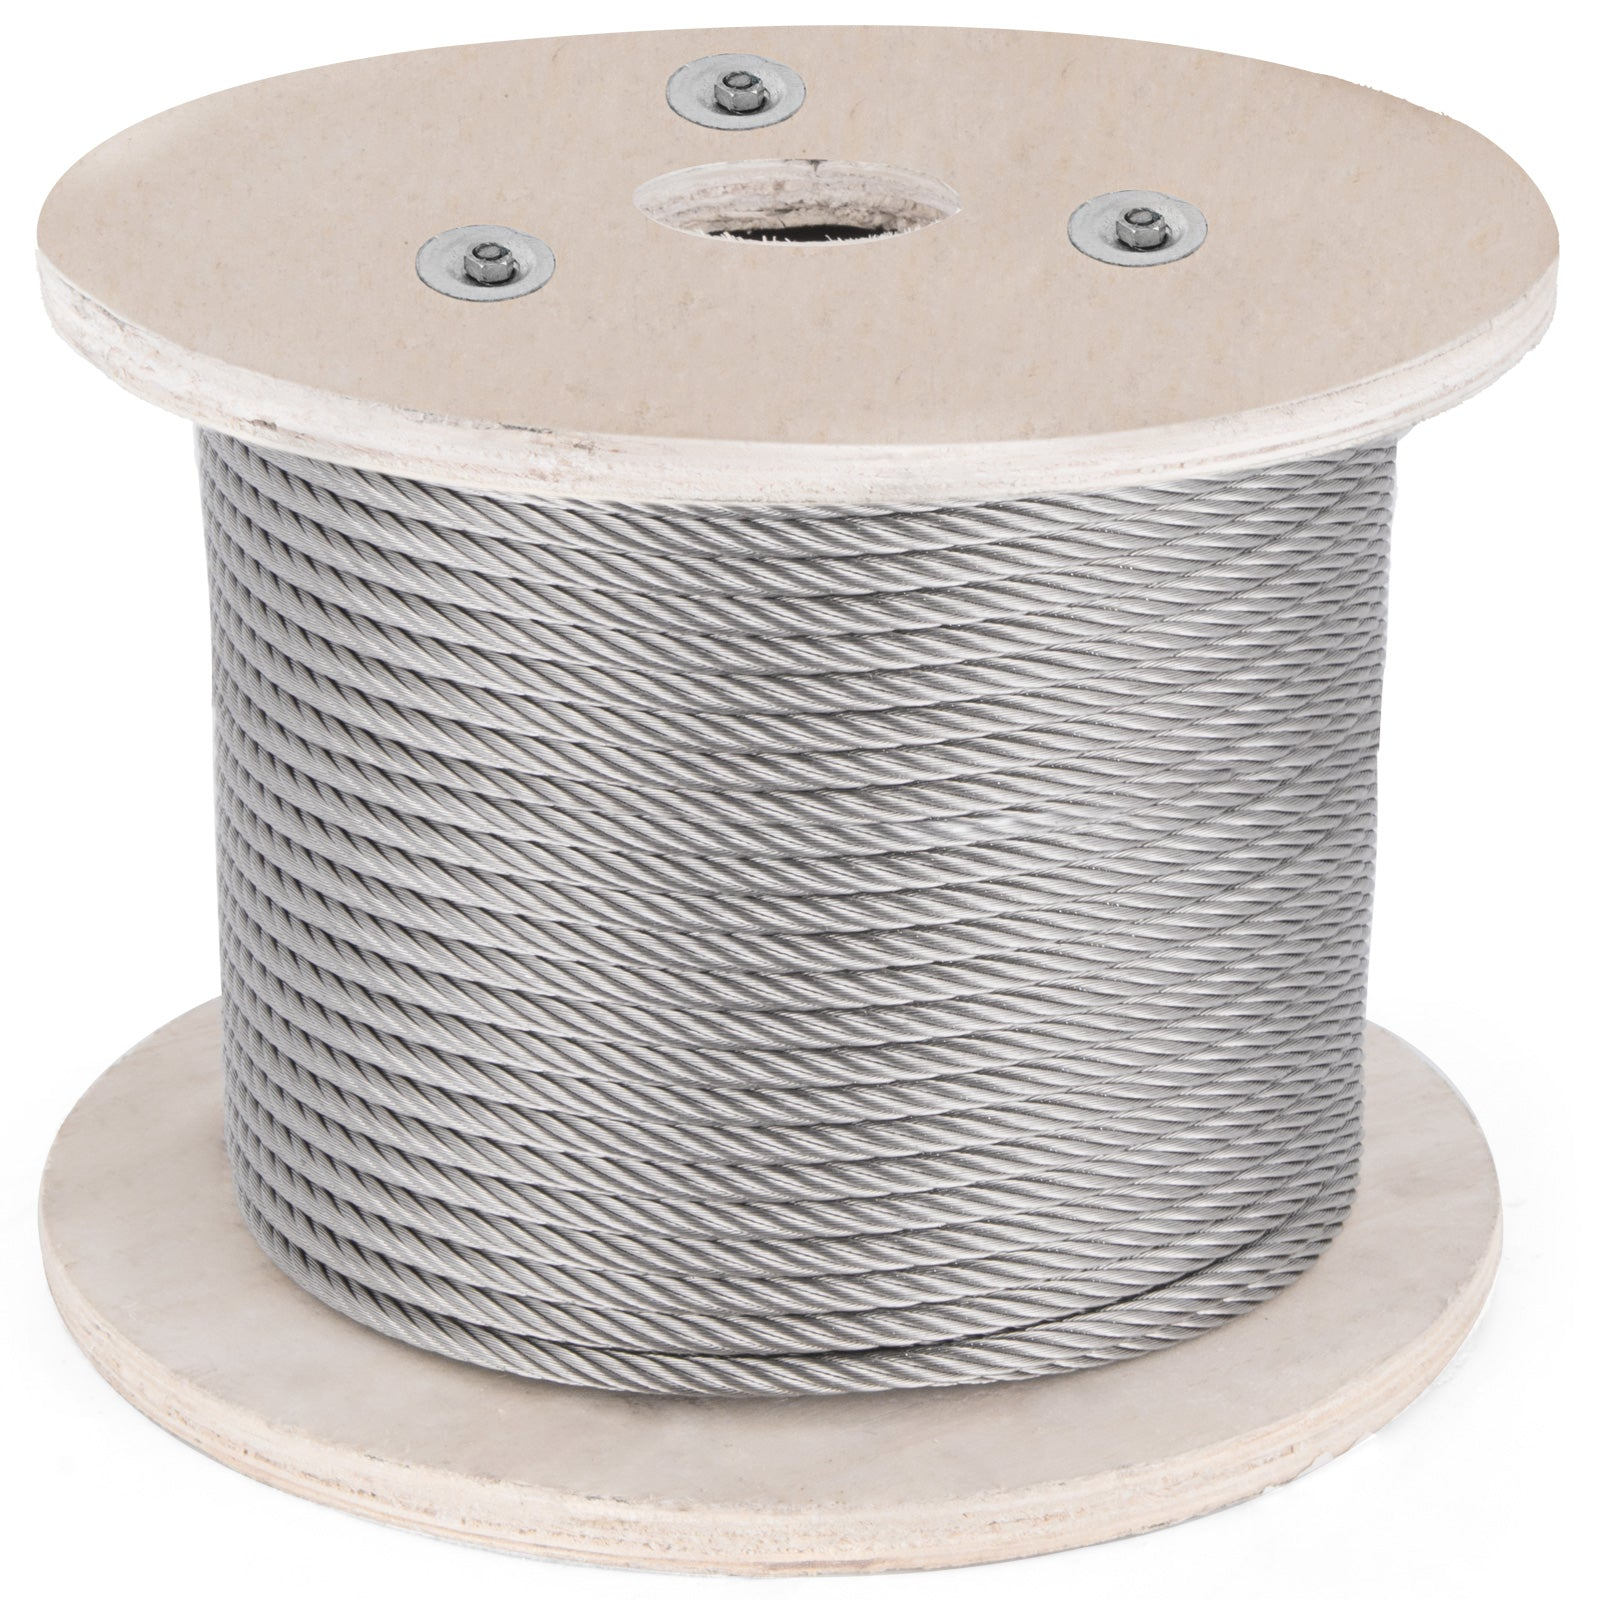 "T316 Stainless Steel Cable Wire Rope,1/4"",7x19,200ft Cable Railing Strand Reel"